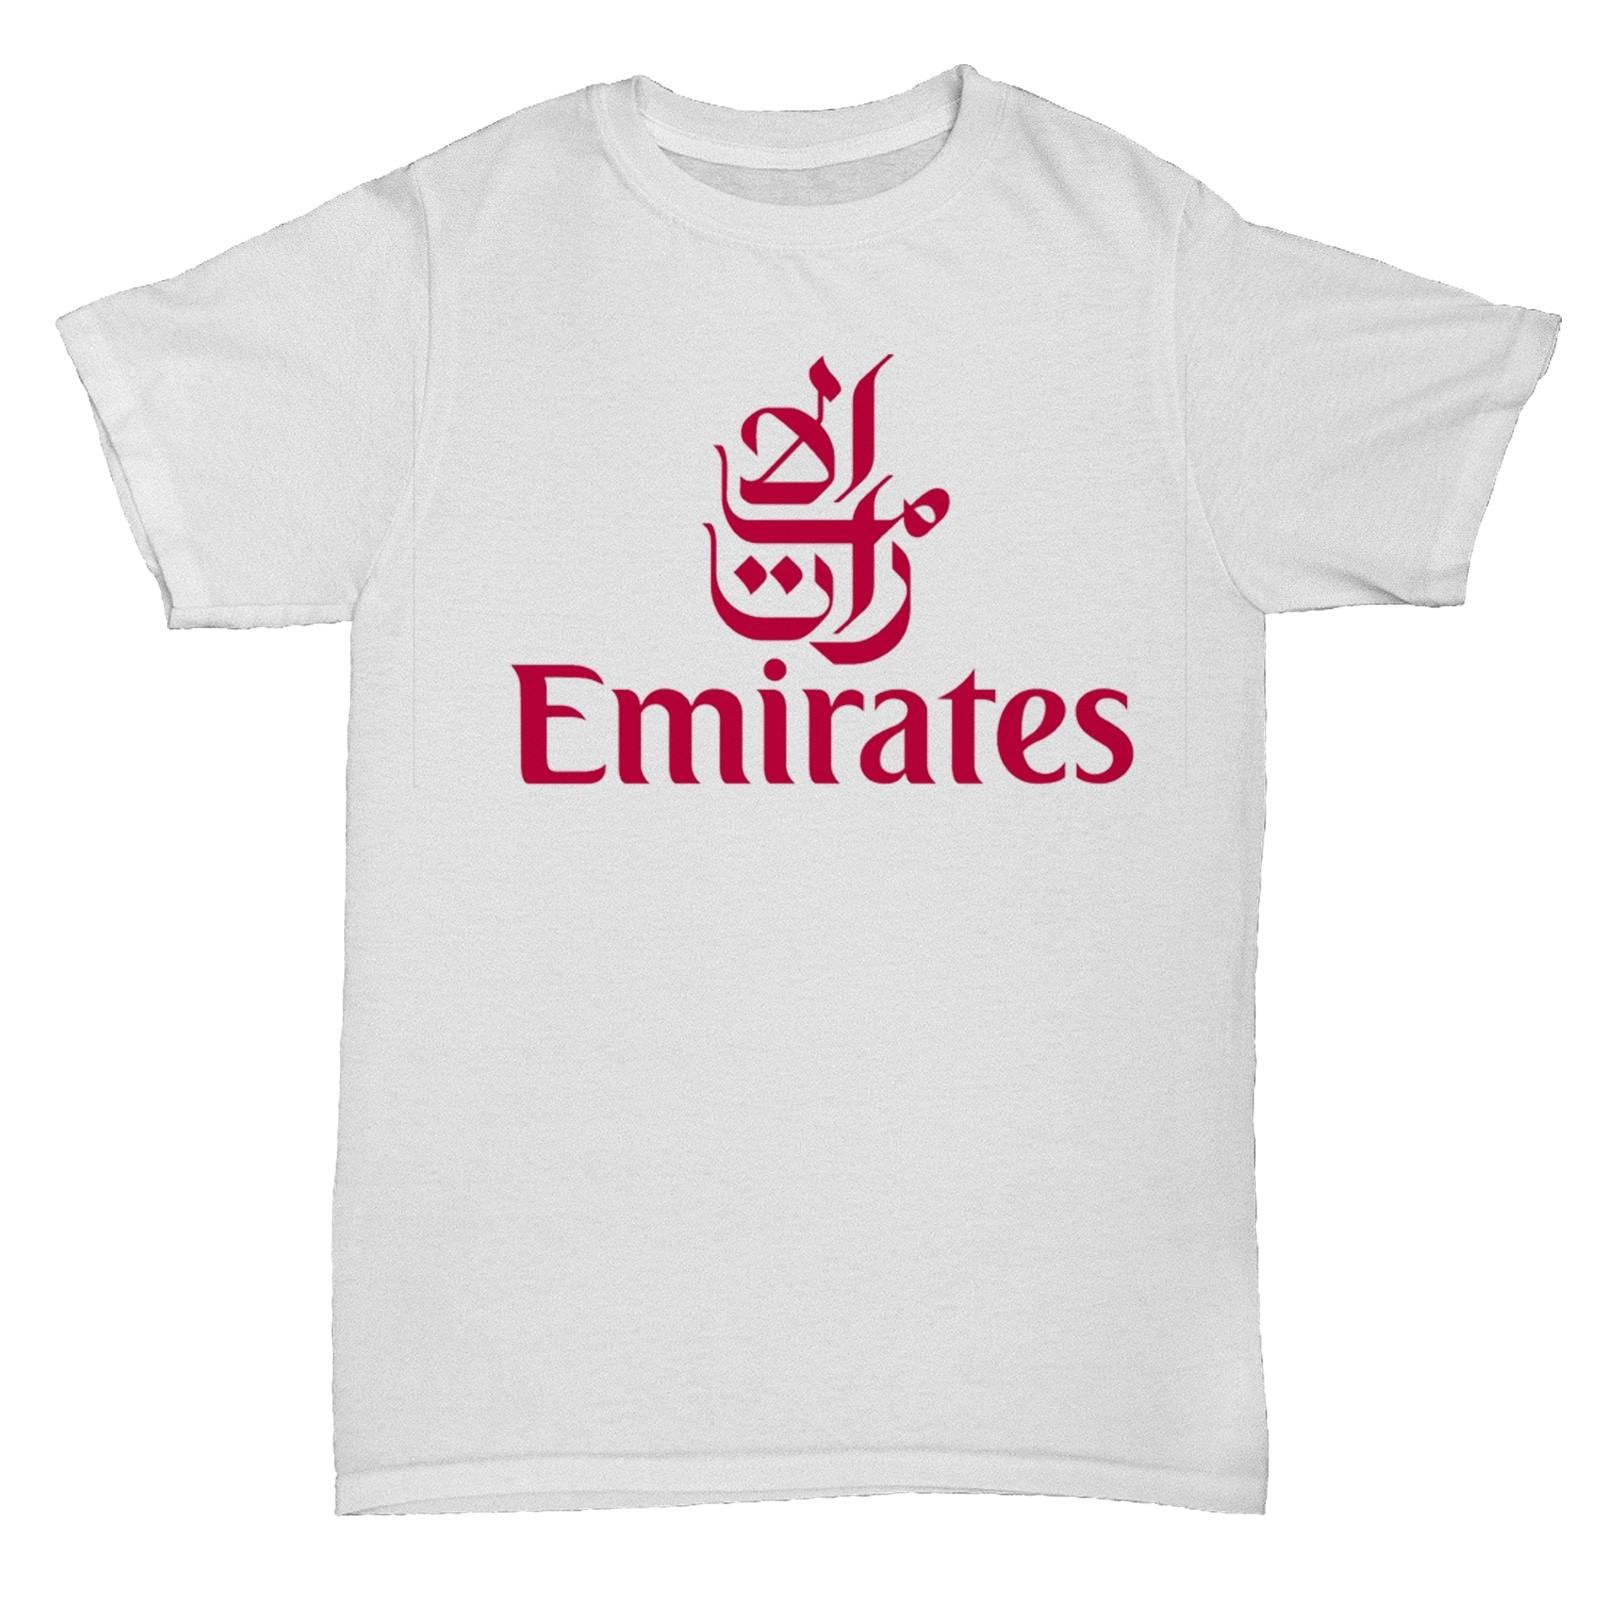 EMIRATES UAE AIRWAYS BA AIRLINES RETRO AEROPLANE BOAC PAN AM T SHIRT Men T-Shirts Men Clothing Plus Size top tee